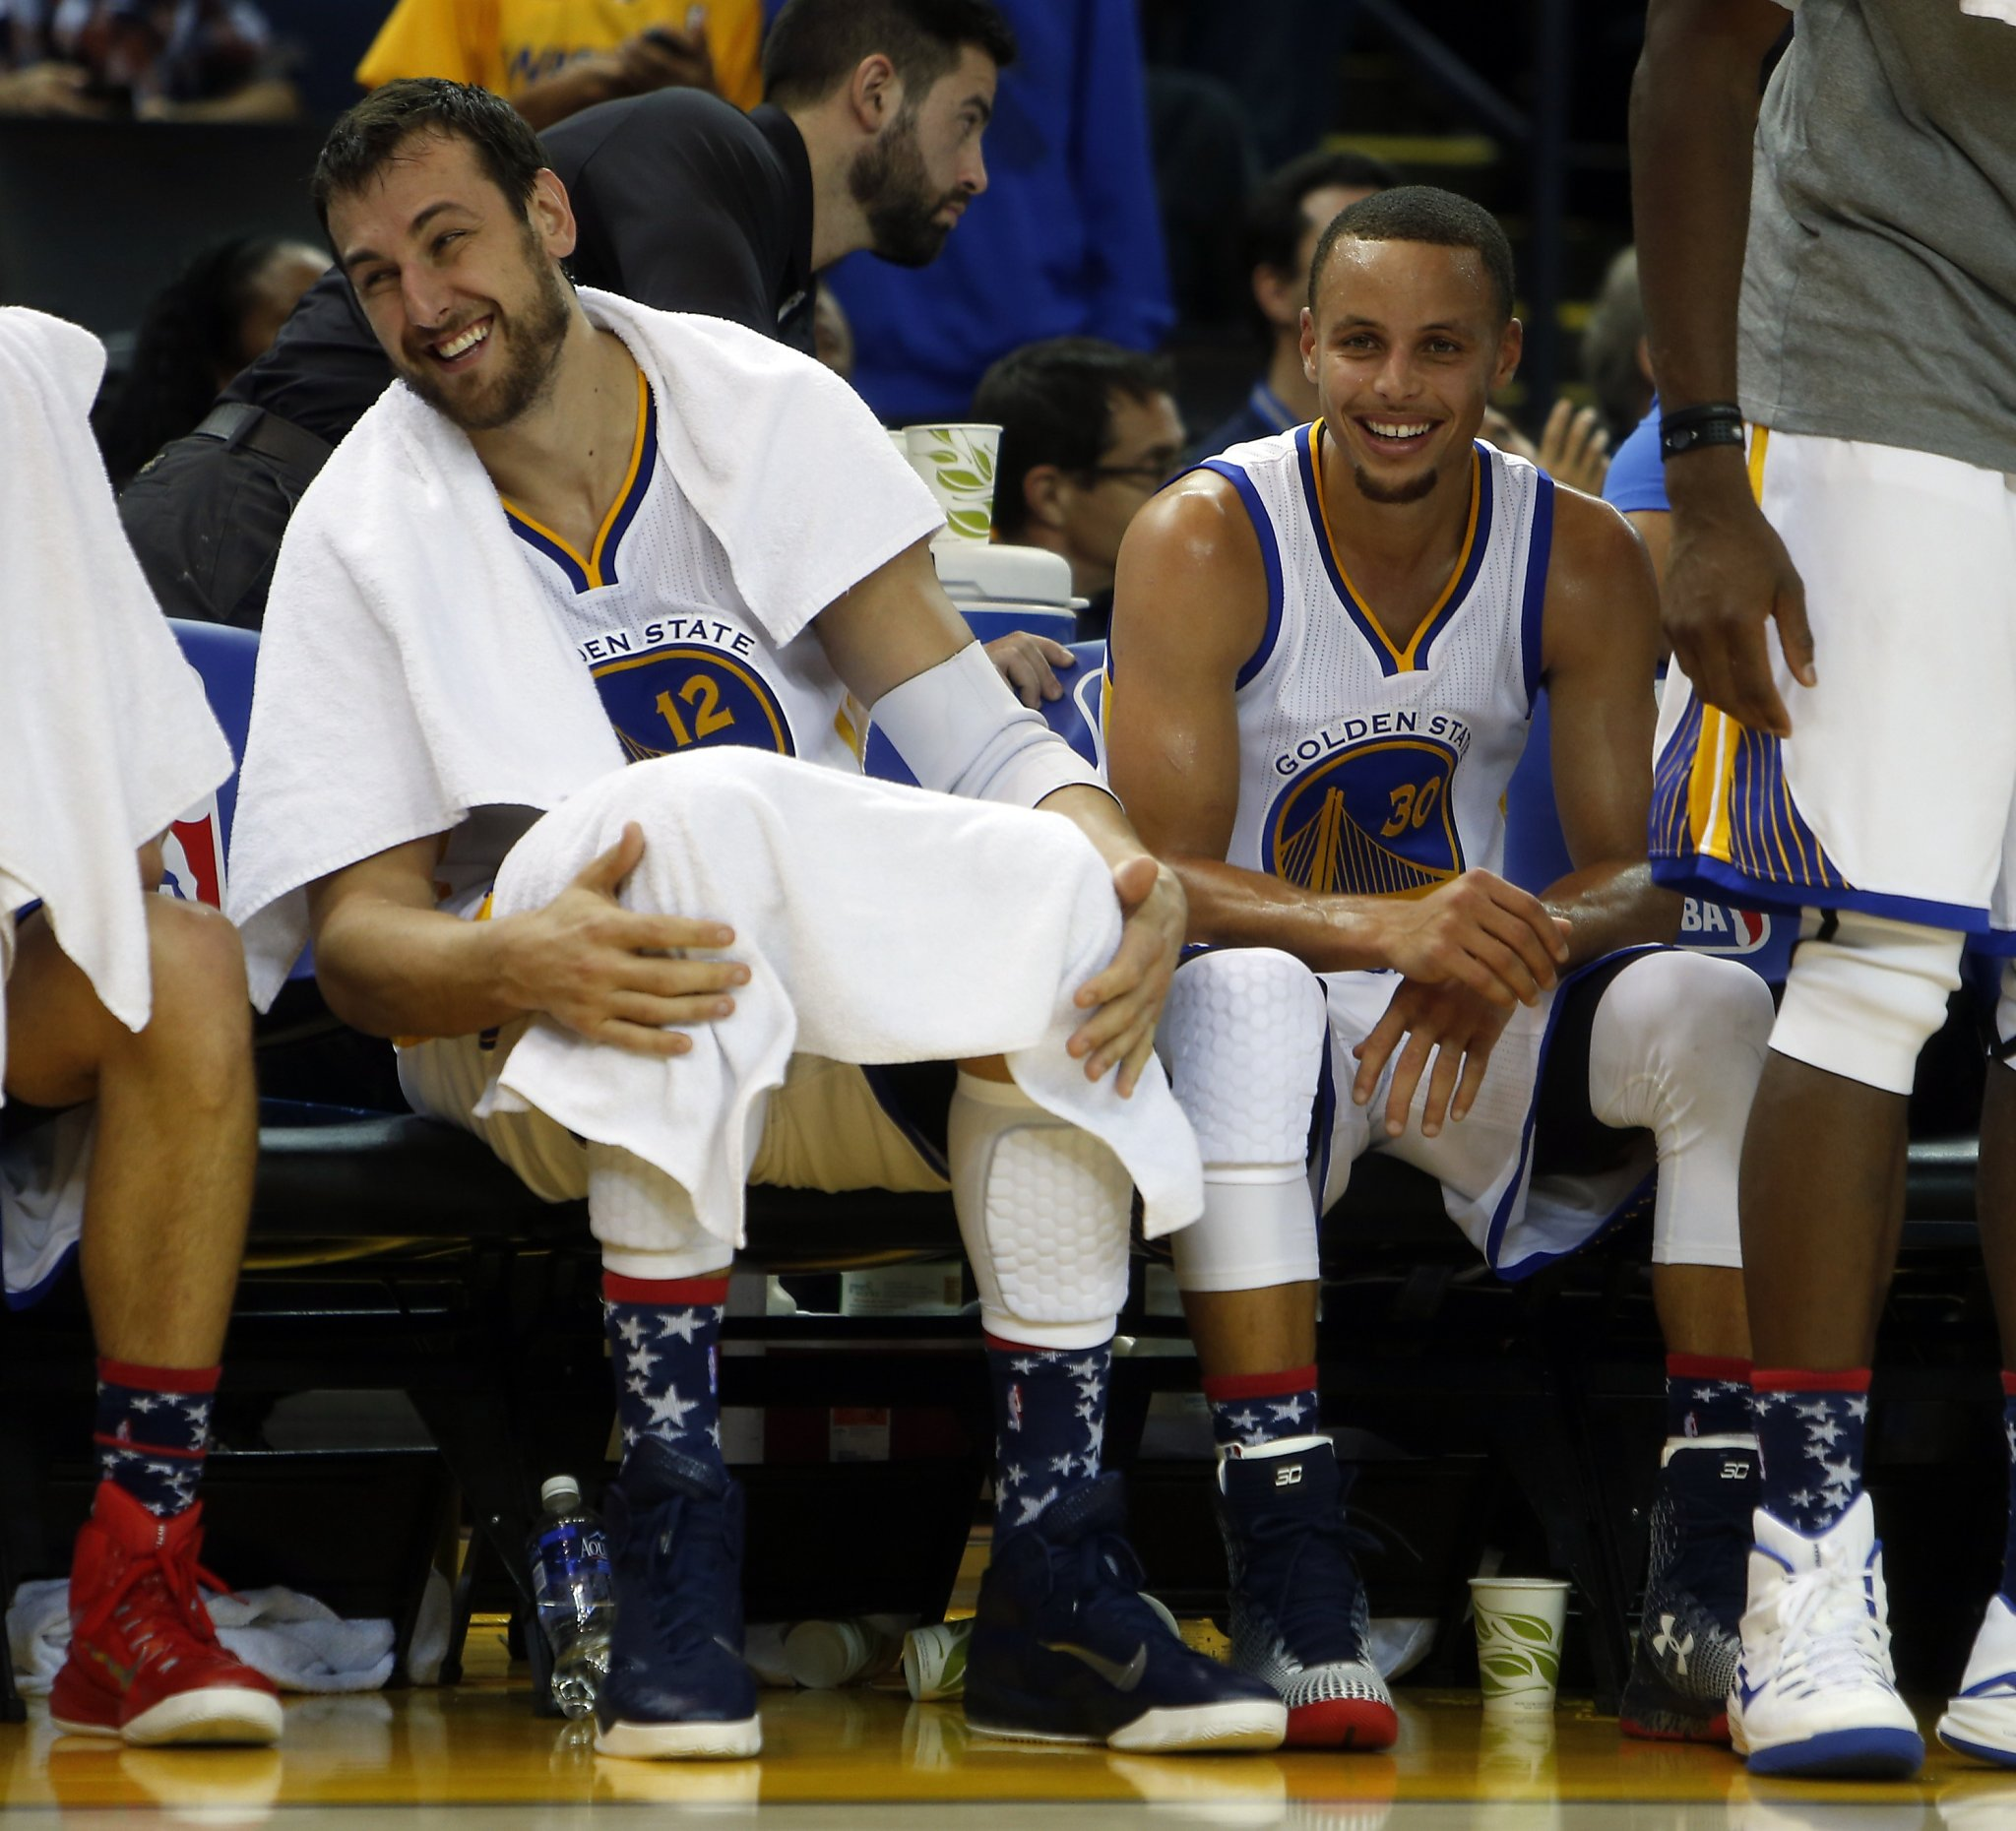 Warriors Come Out And Play Song: C'mon, S.F., Hop Aboard The Warriors' Bandwagon